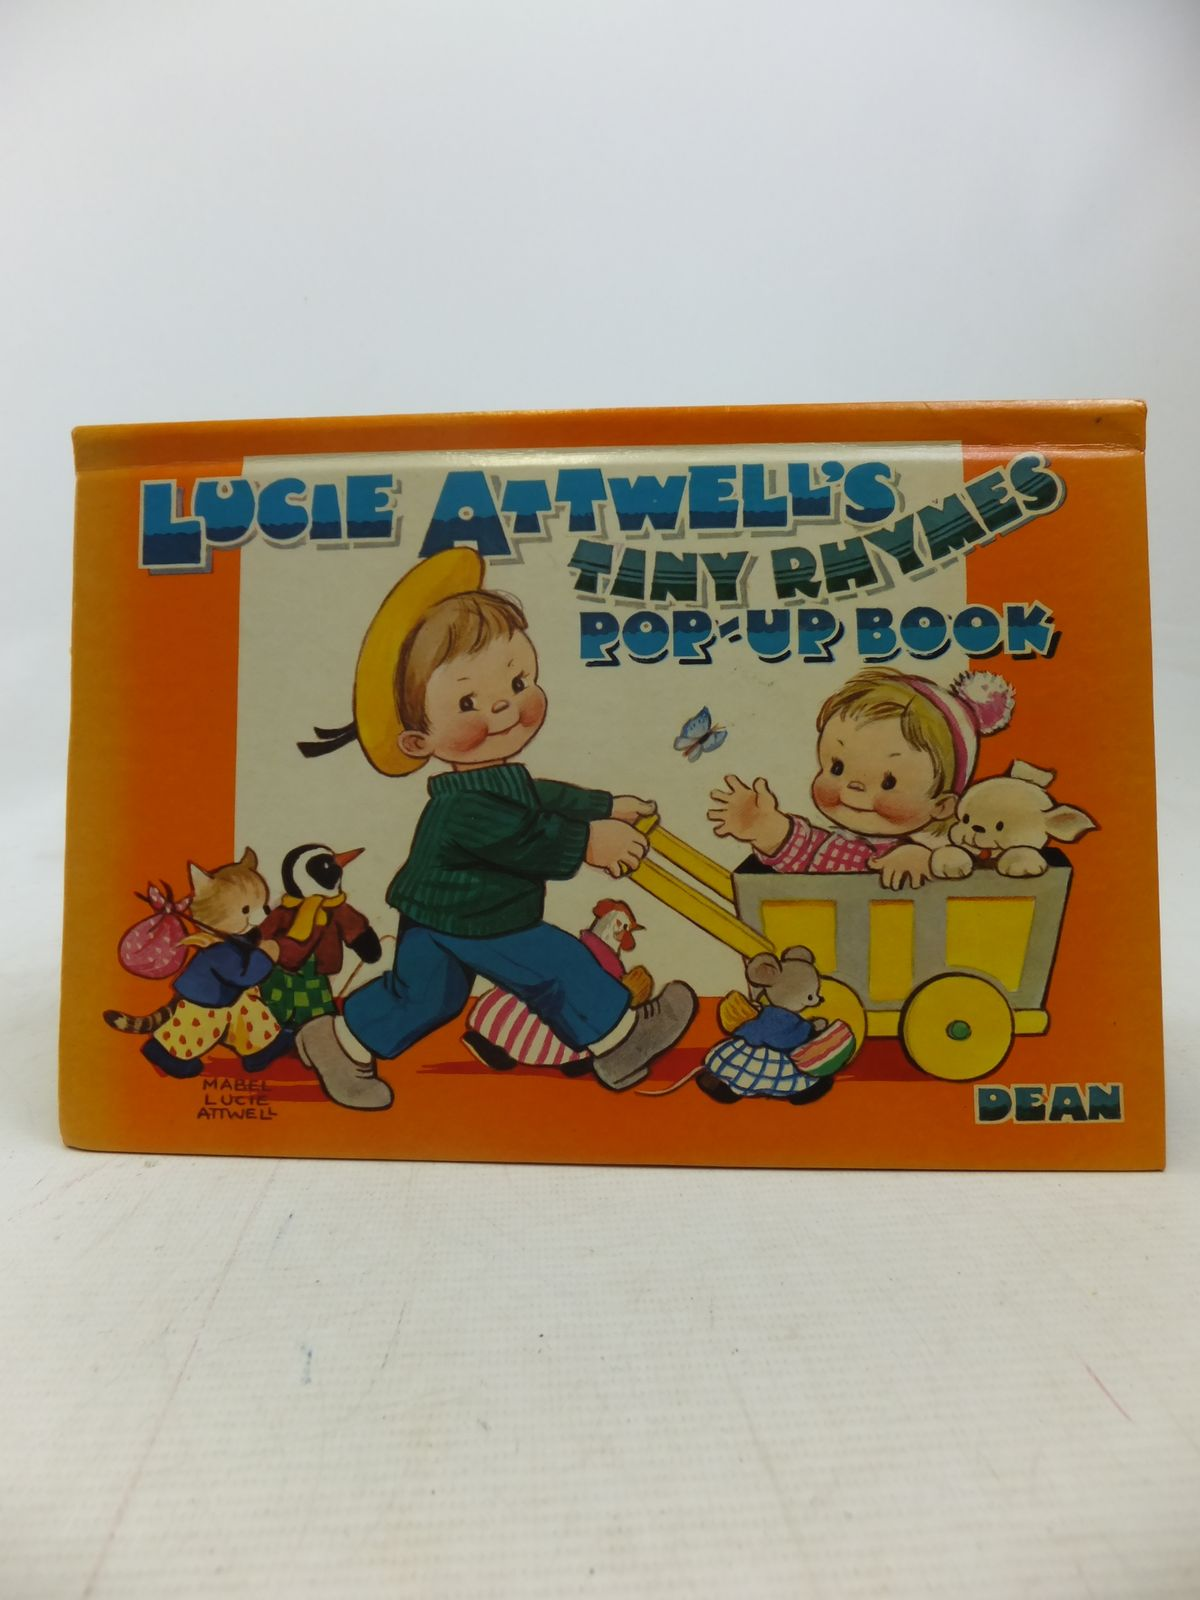 Photo of LUCIE ATTWELL'S TINY RHYMES POP-UP BOOK written by Attwell, Mabel Lucie illustrated by Attwell, Mabel Lucie published by Dean & Son Ltd. (STOCK CODE: 1809786)  for sale by Stella & Rose's Books